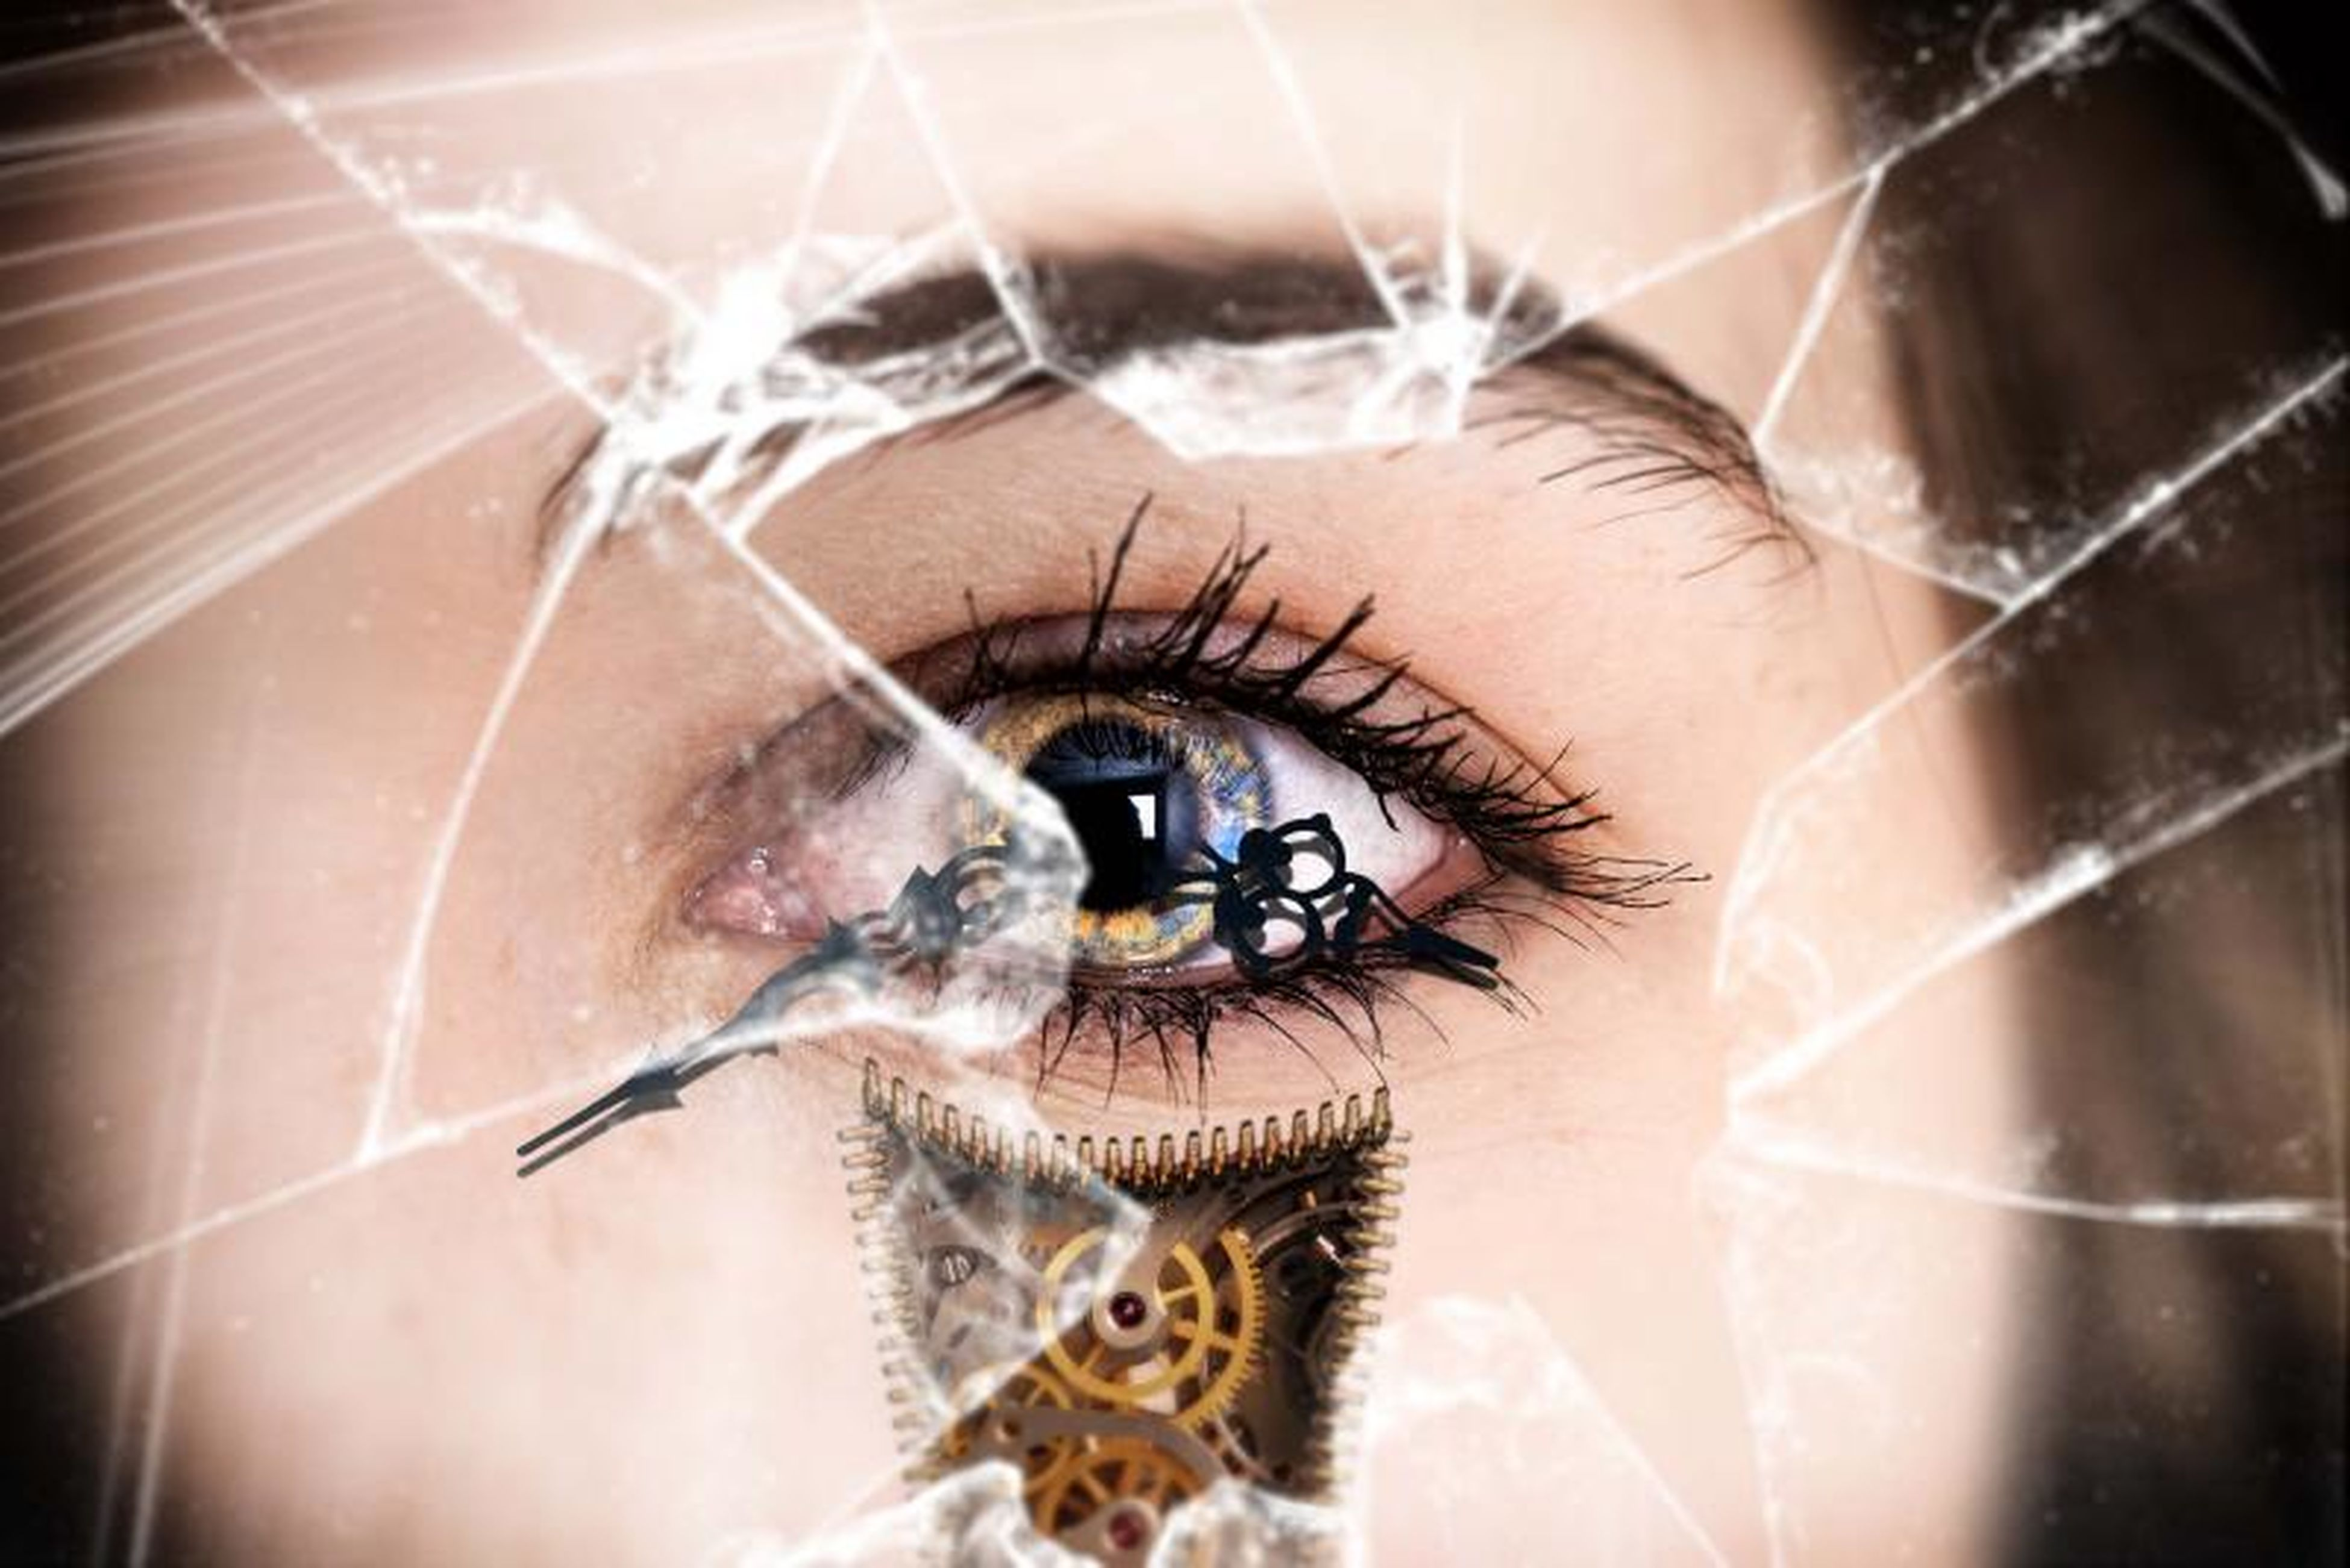 indoors, close-up, part of, unrecognizable person, focus on foreground, selective focus, reflection, person, lifestyles, cropped, human eye, extreme close-up, day, spider web, men